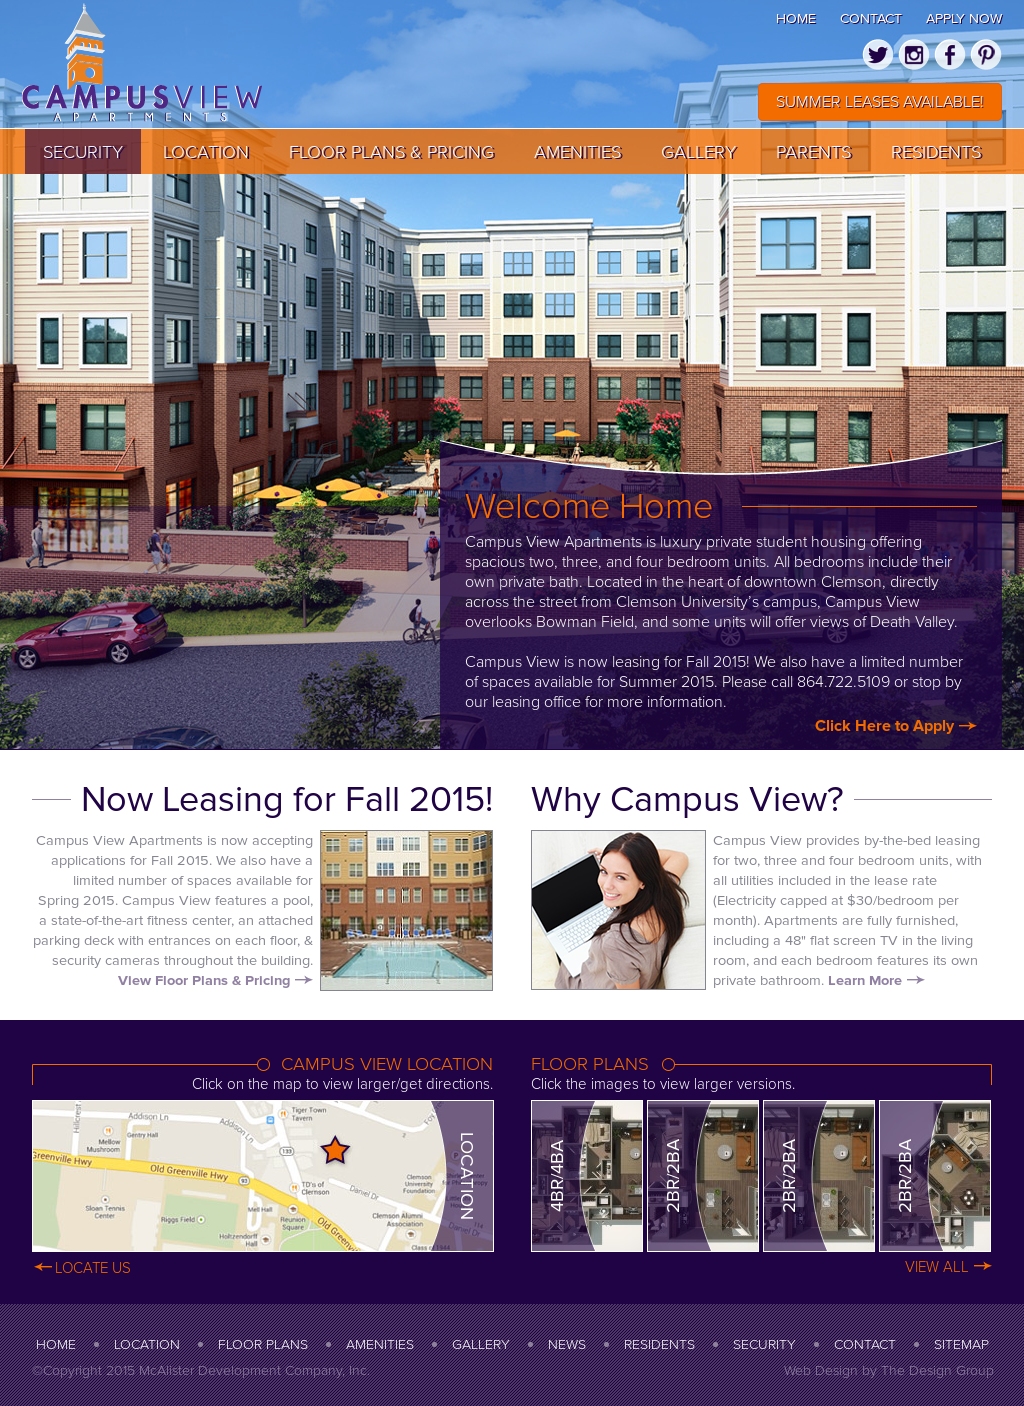 Campus View Apartments Clemson S Competitors Revenue Number Of Employees Funding Acquisitions News Owler Company Profile